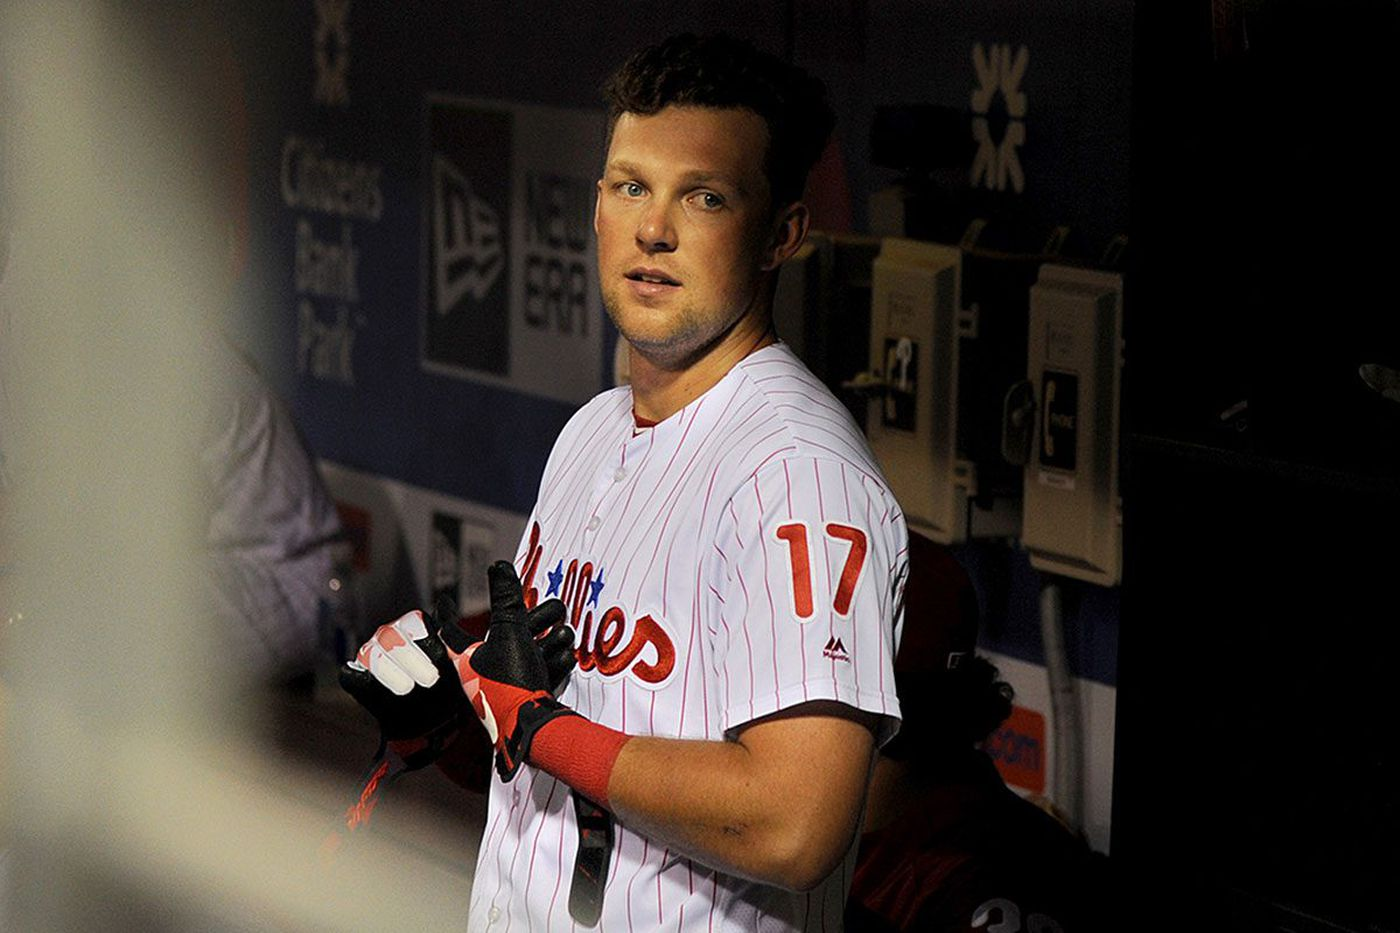 Rhys Hoskins and other young Phillies survive baseball's grind